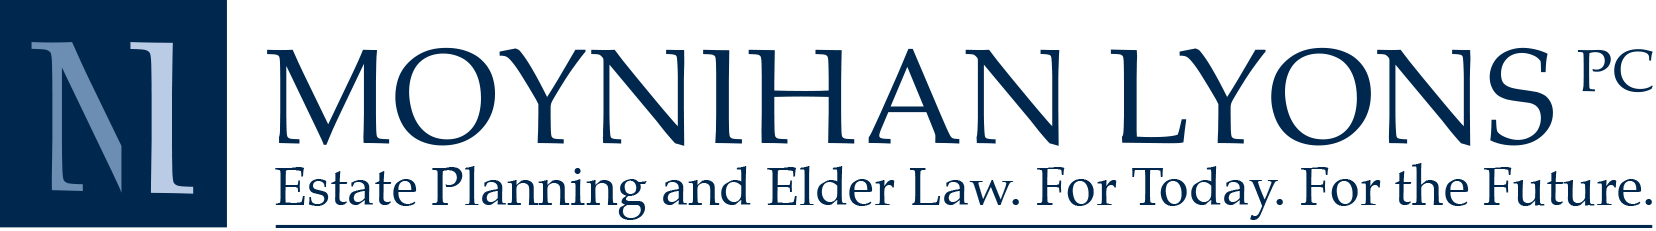 Moynihan Lyons PC, Estate Planning and Elder Law. For Today. For the Future.